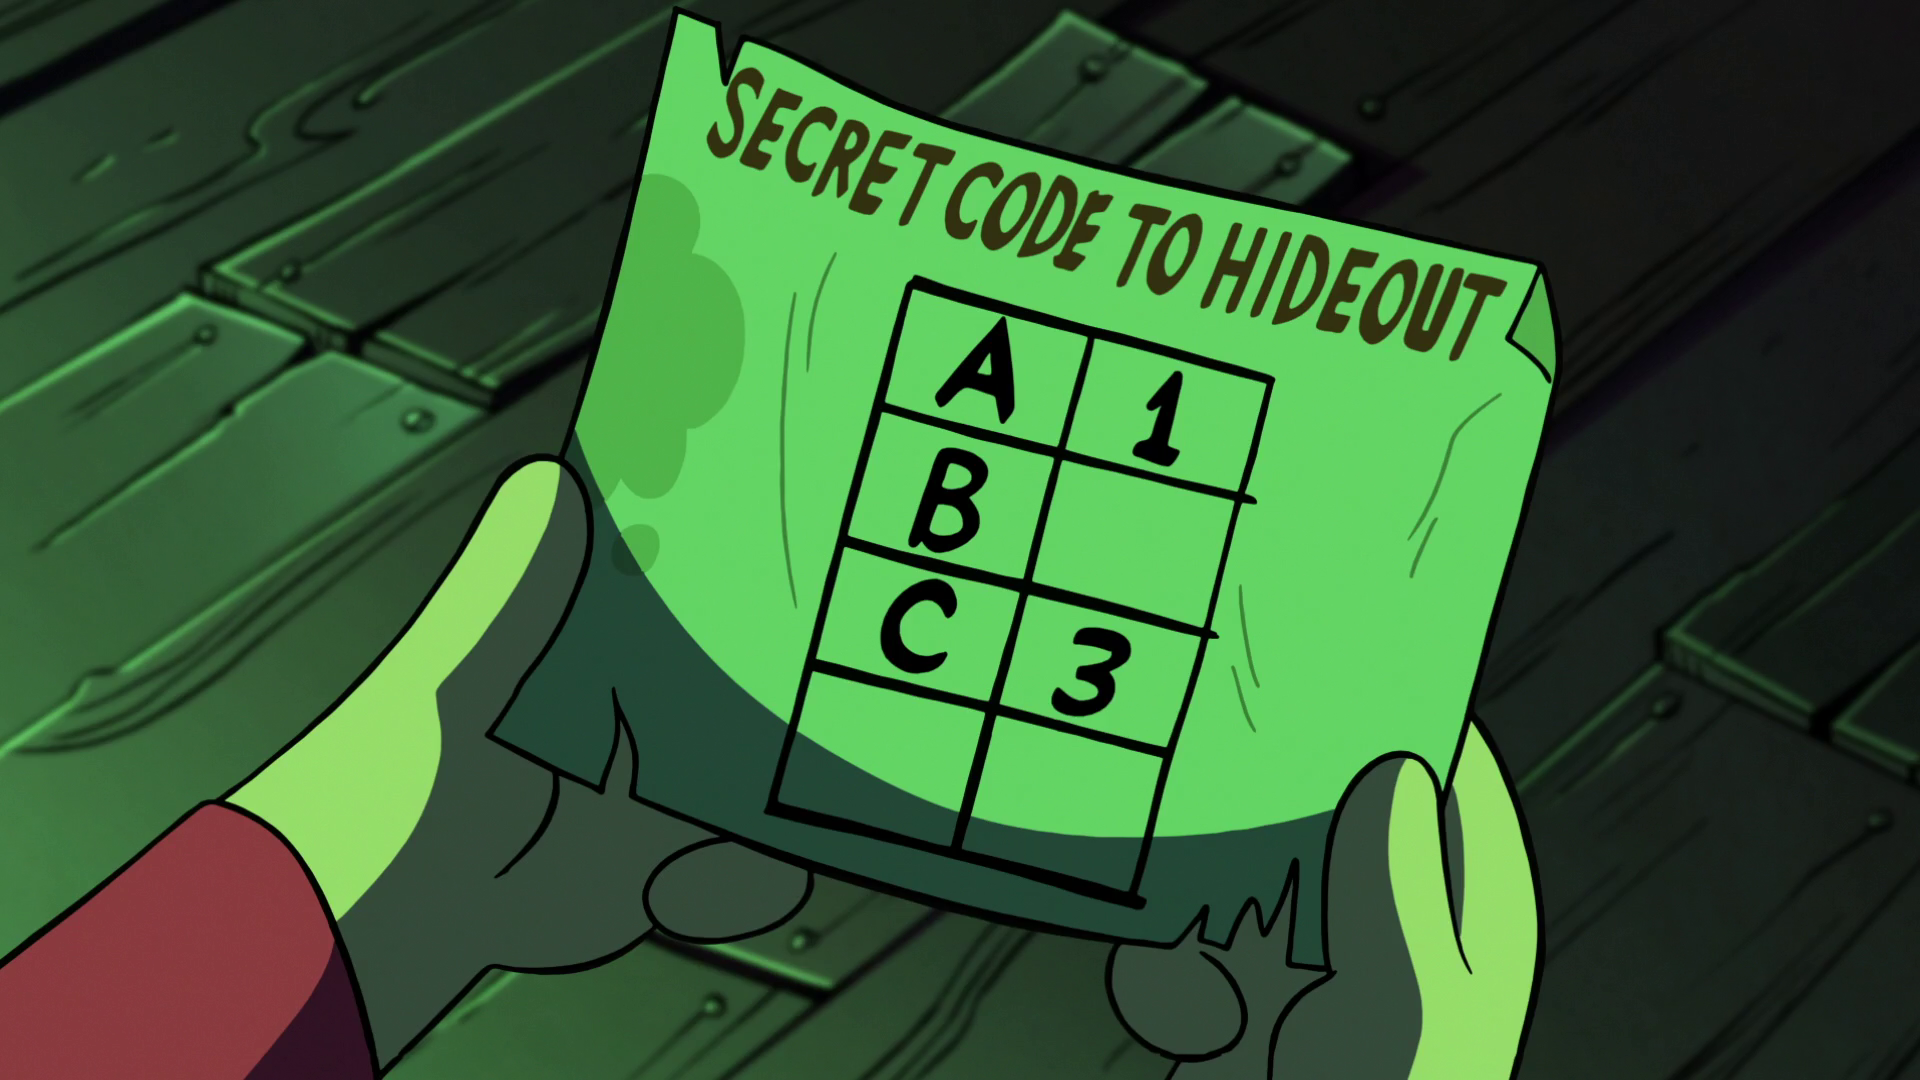 image s2e11 secret codepng gravity falls wiki